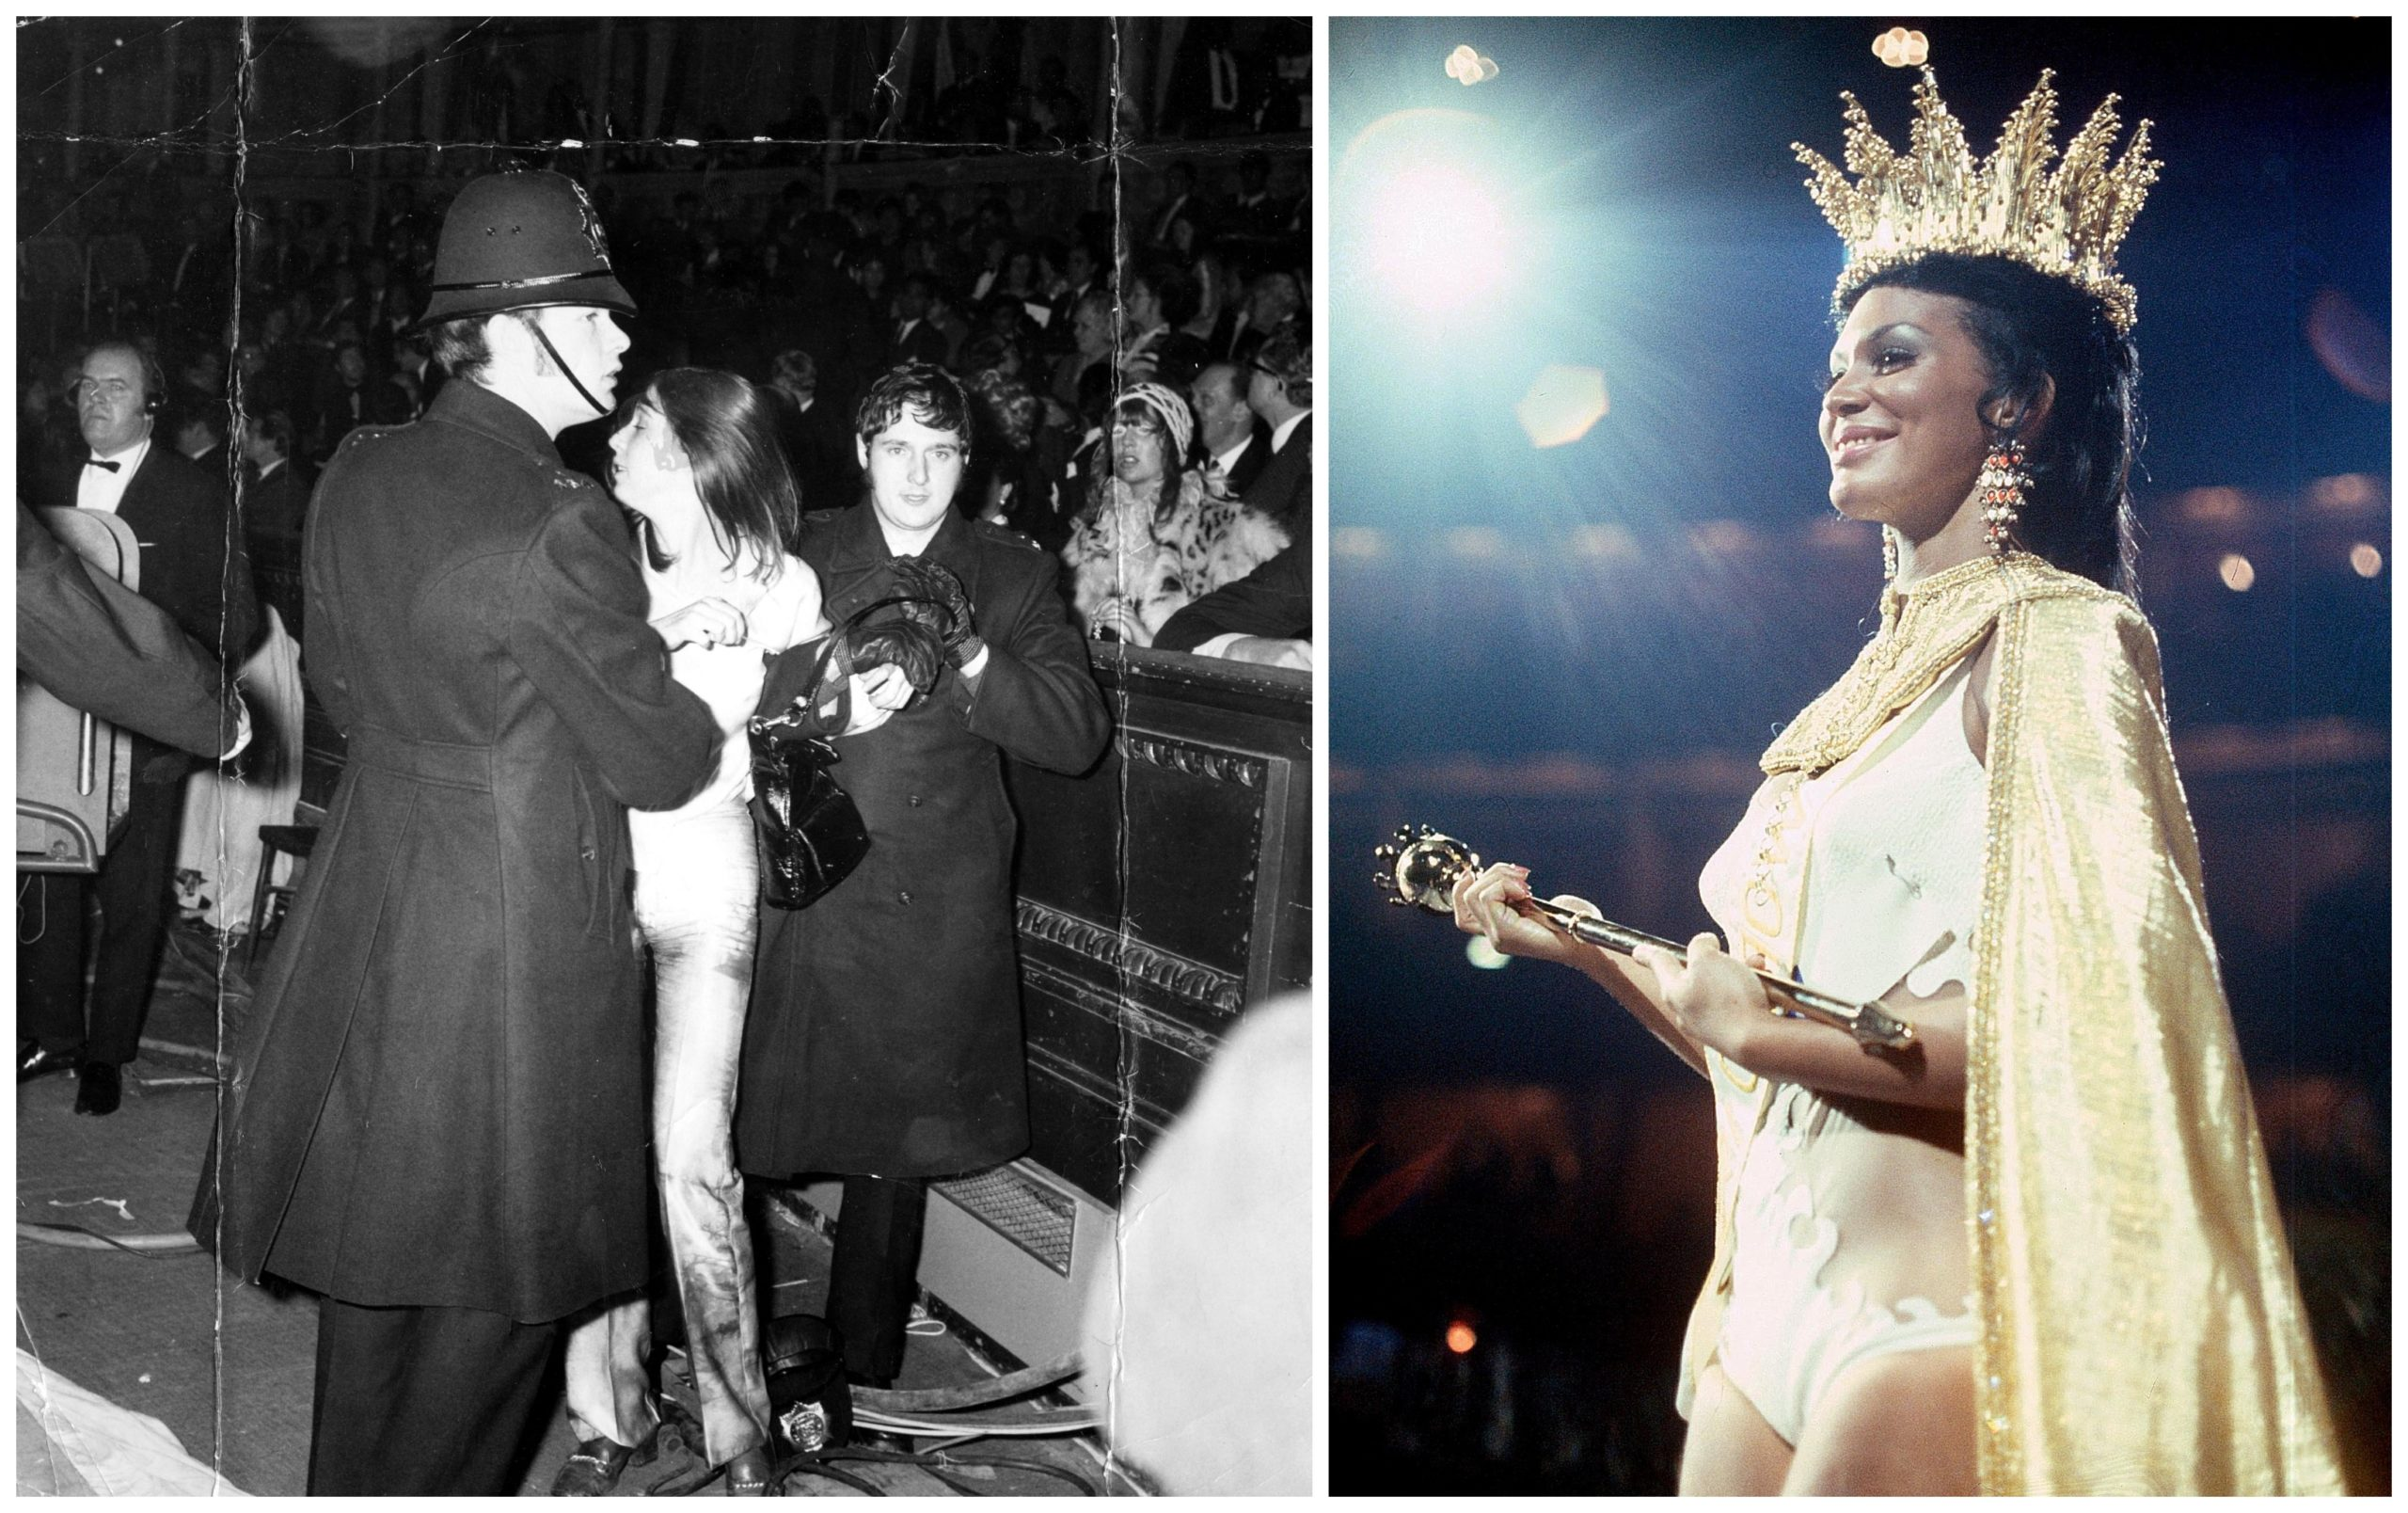 Jennifer Hosten, right, is the first black woman to be crowned Miss World, at 1970 pageant targeted by activists at Royal Albert Hall in London; left, a police officer restrains a protester